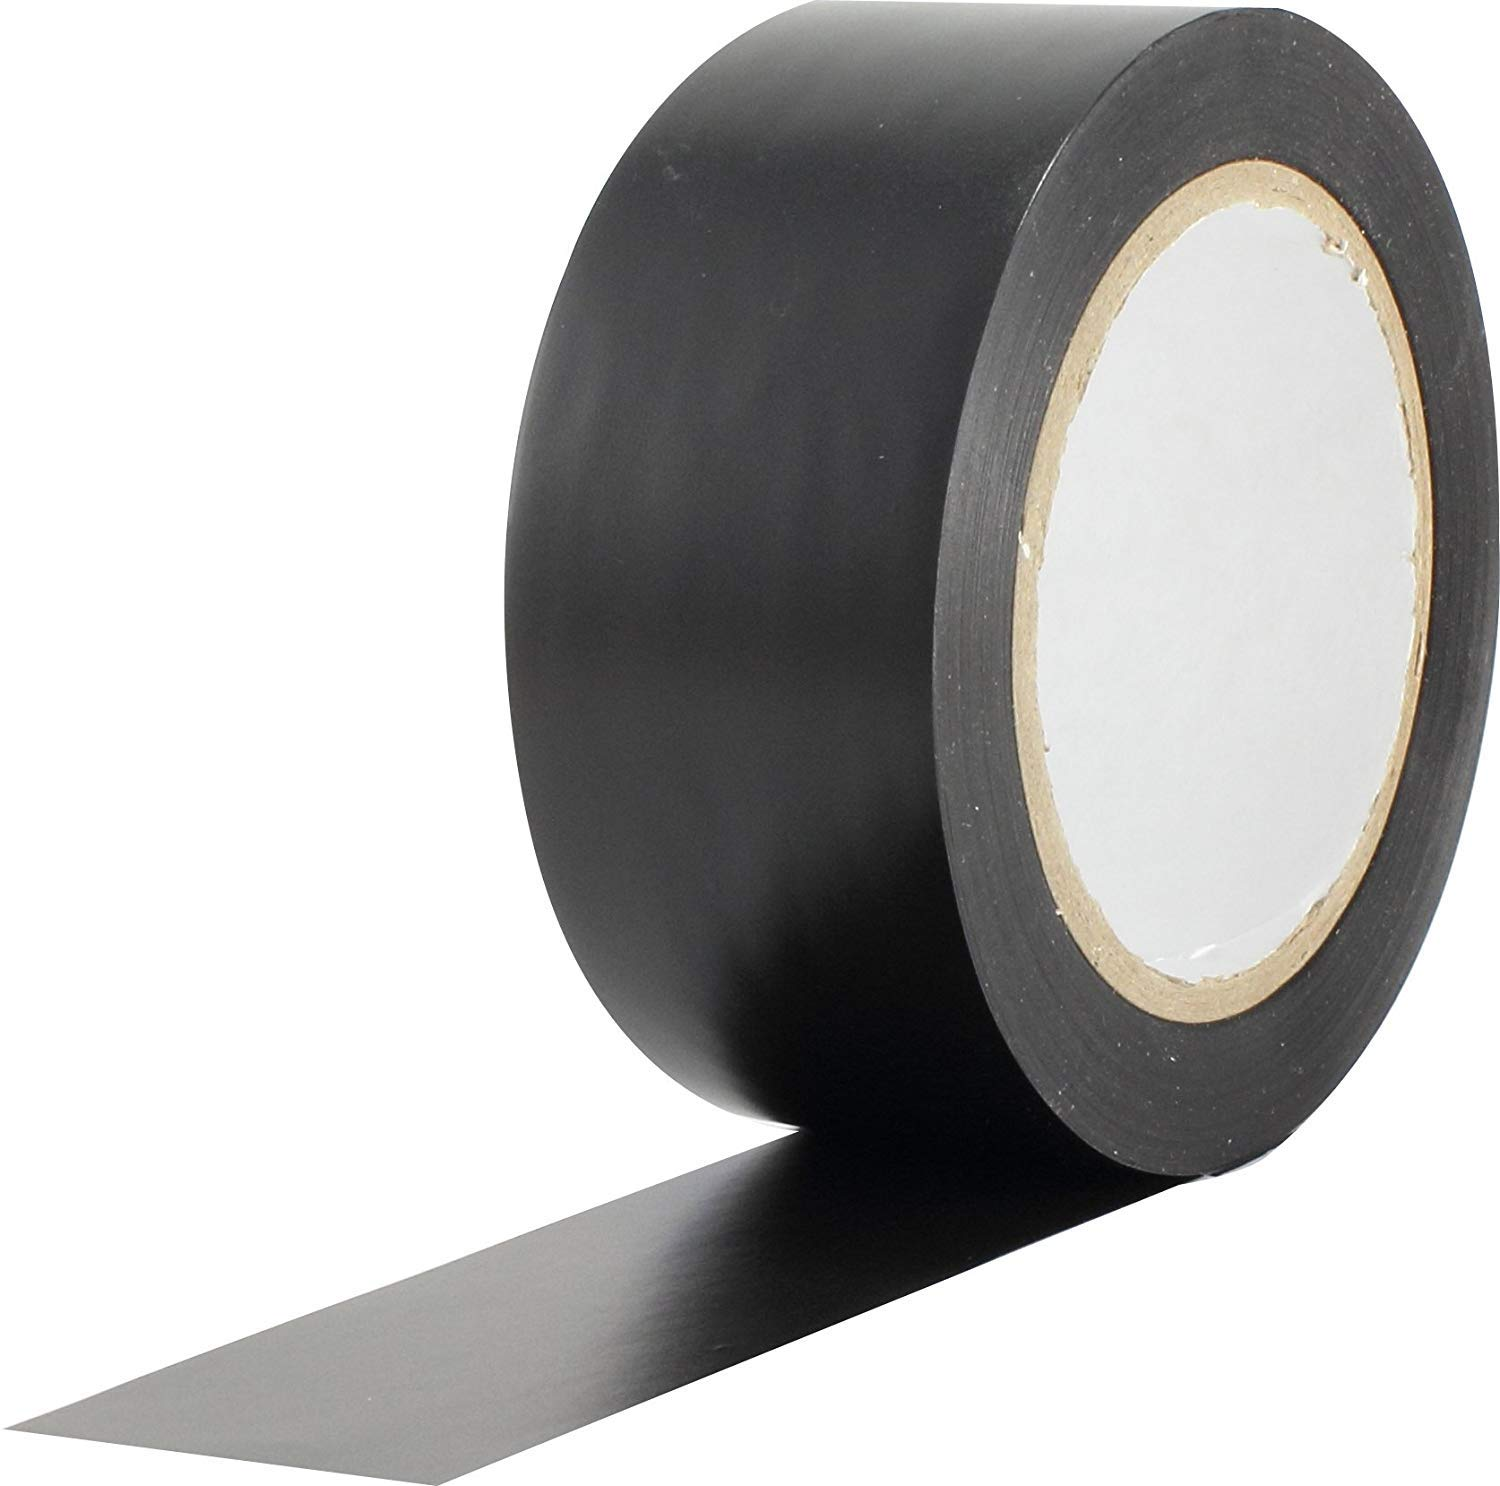 ProTapes Pro 50 Premium Vinyl Safety Marking and Dance Floor Splicing Tape, 6 mils Thick, 36 yds Length x 2'' Width, Black (Pack of 1) (2 Pack)